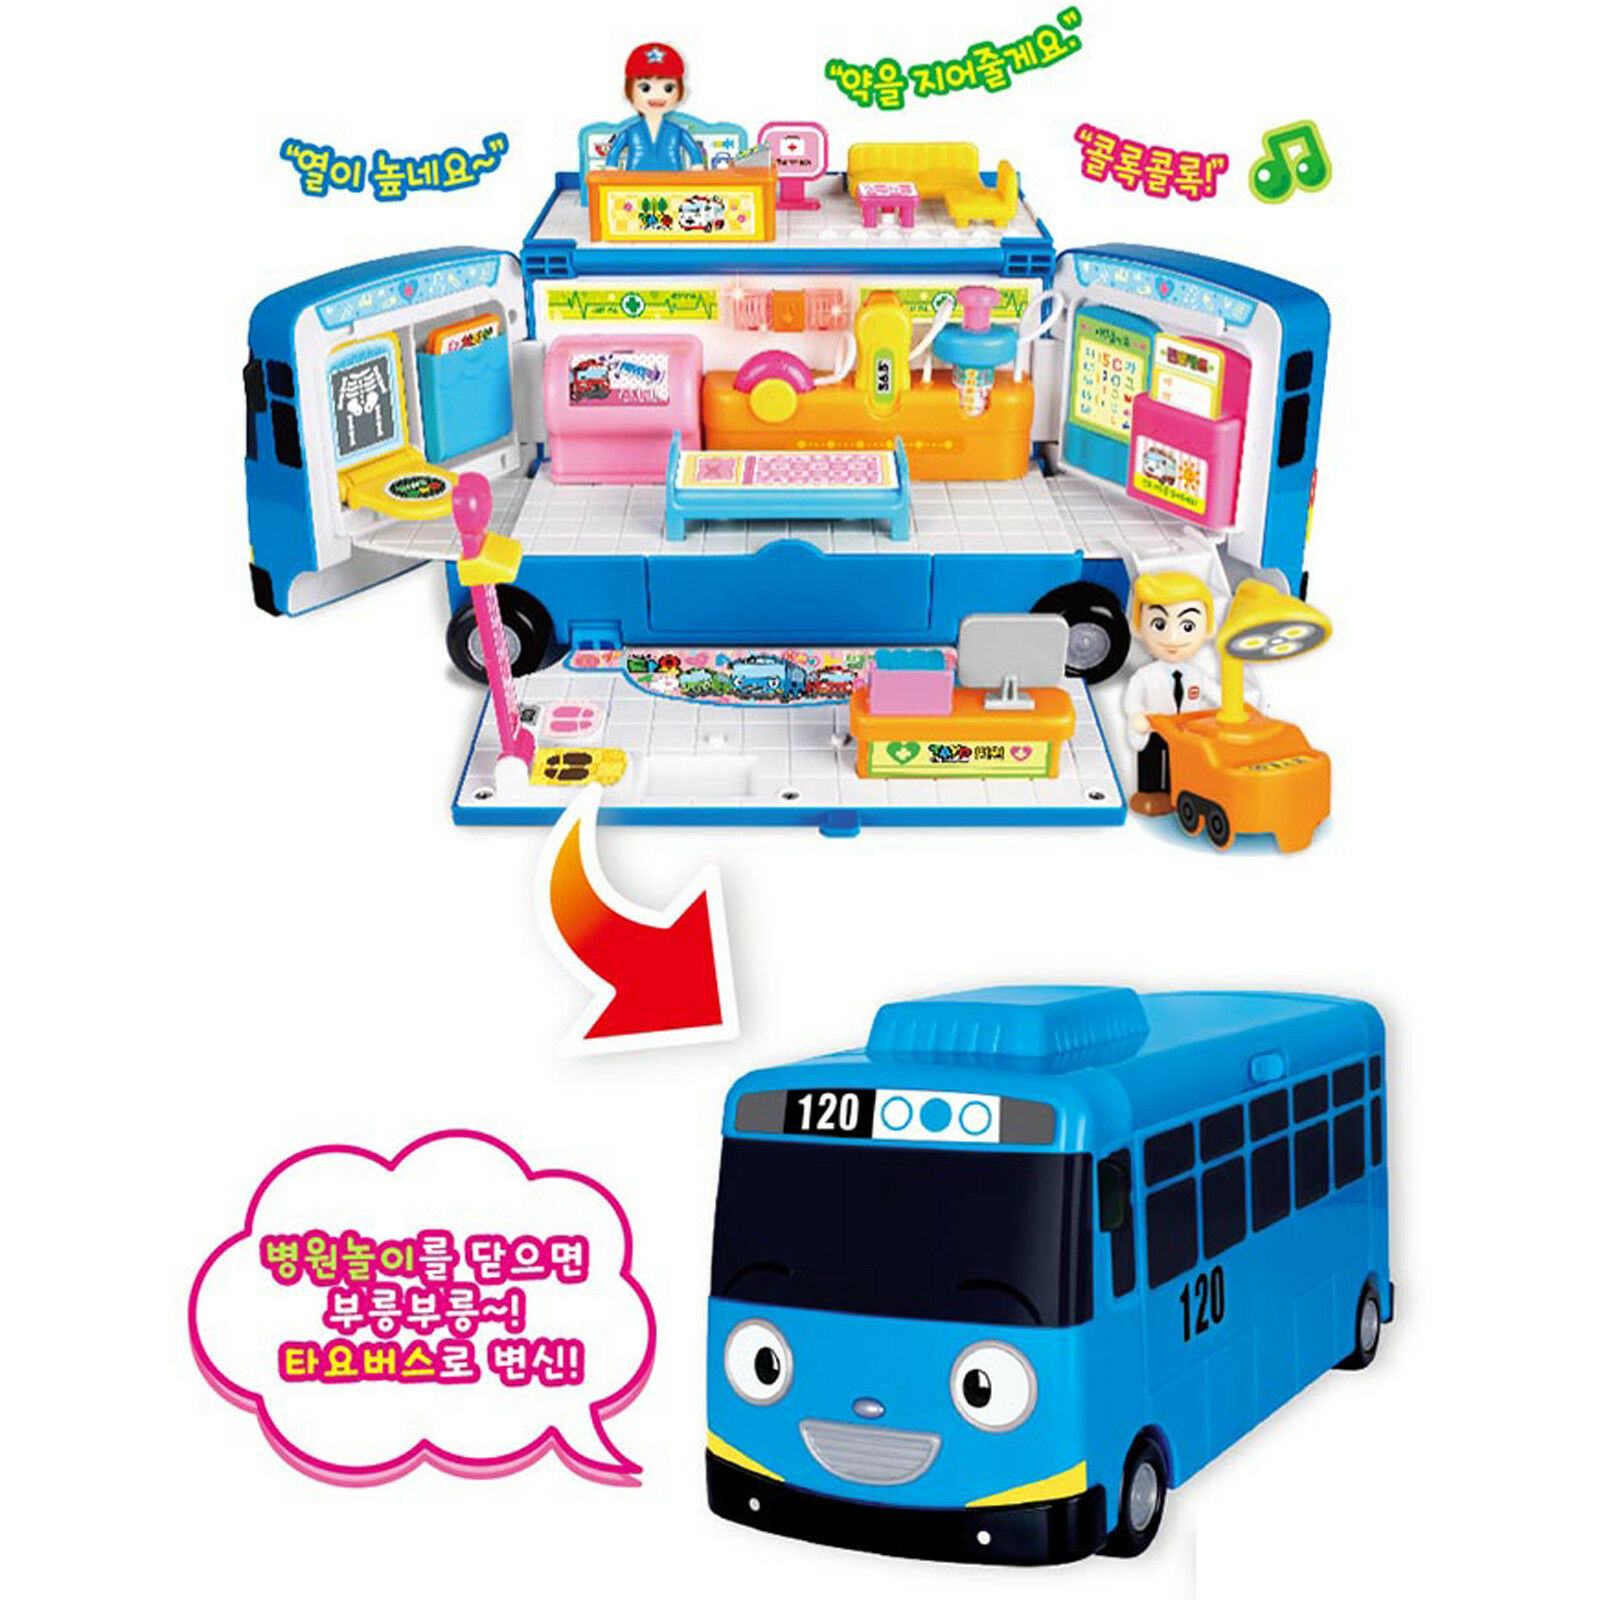 Tayo The Little Bus Transformer Car Hosptial Playset